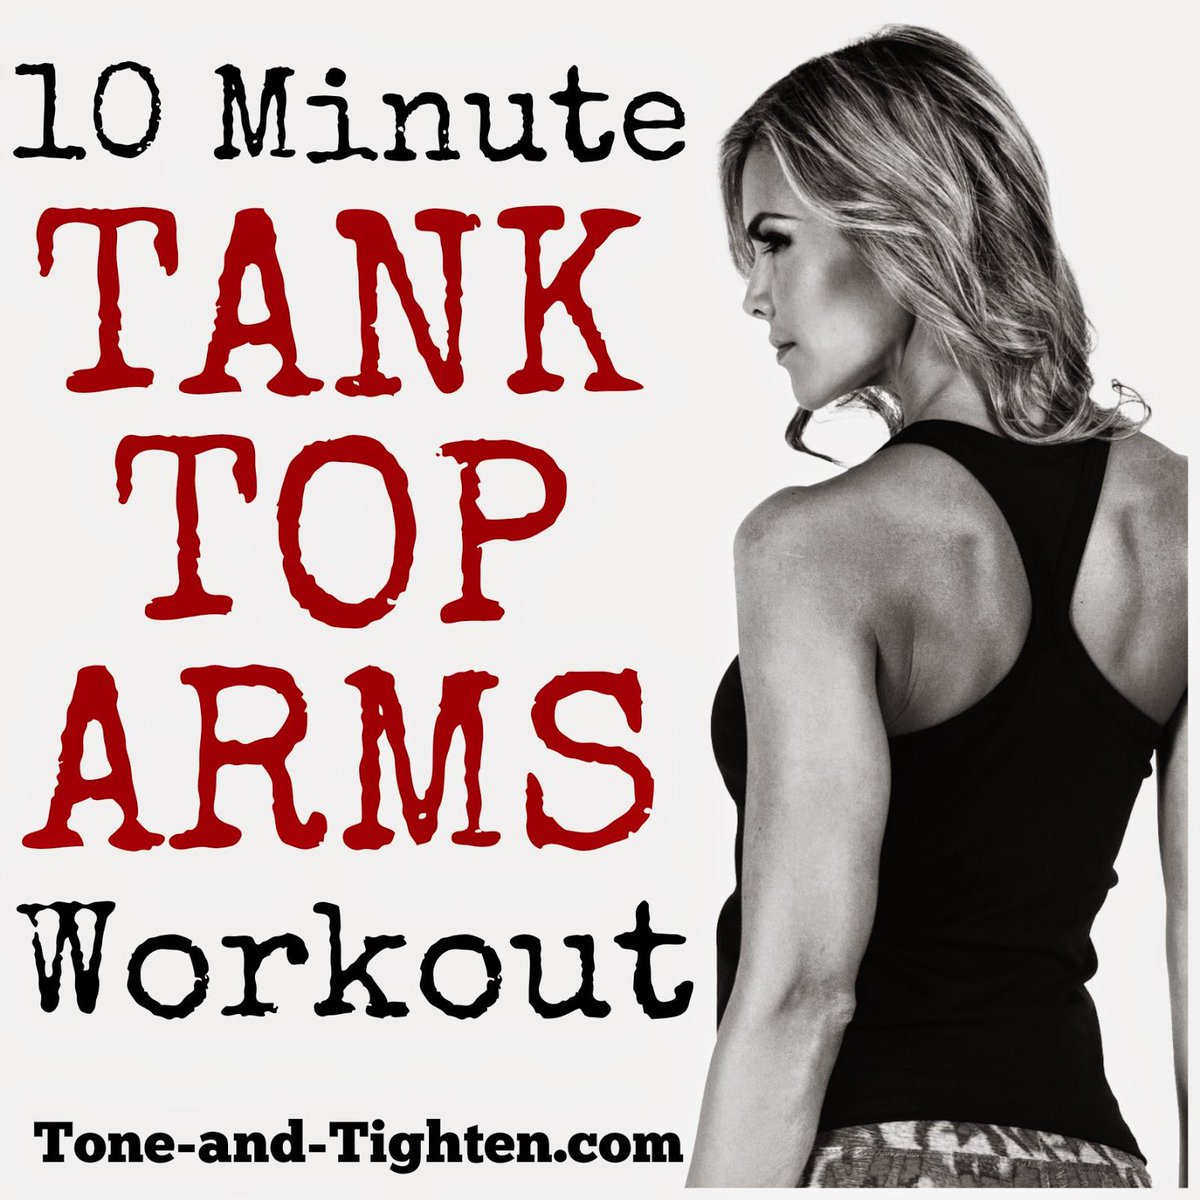 Join @Resultsfitness at Chandler, AZ's Woman's Only Fitness Center for Tank Top Tone Arms! https://t.co/hw9GjpuB09 http://t.co/QofsFcCHjo